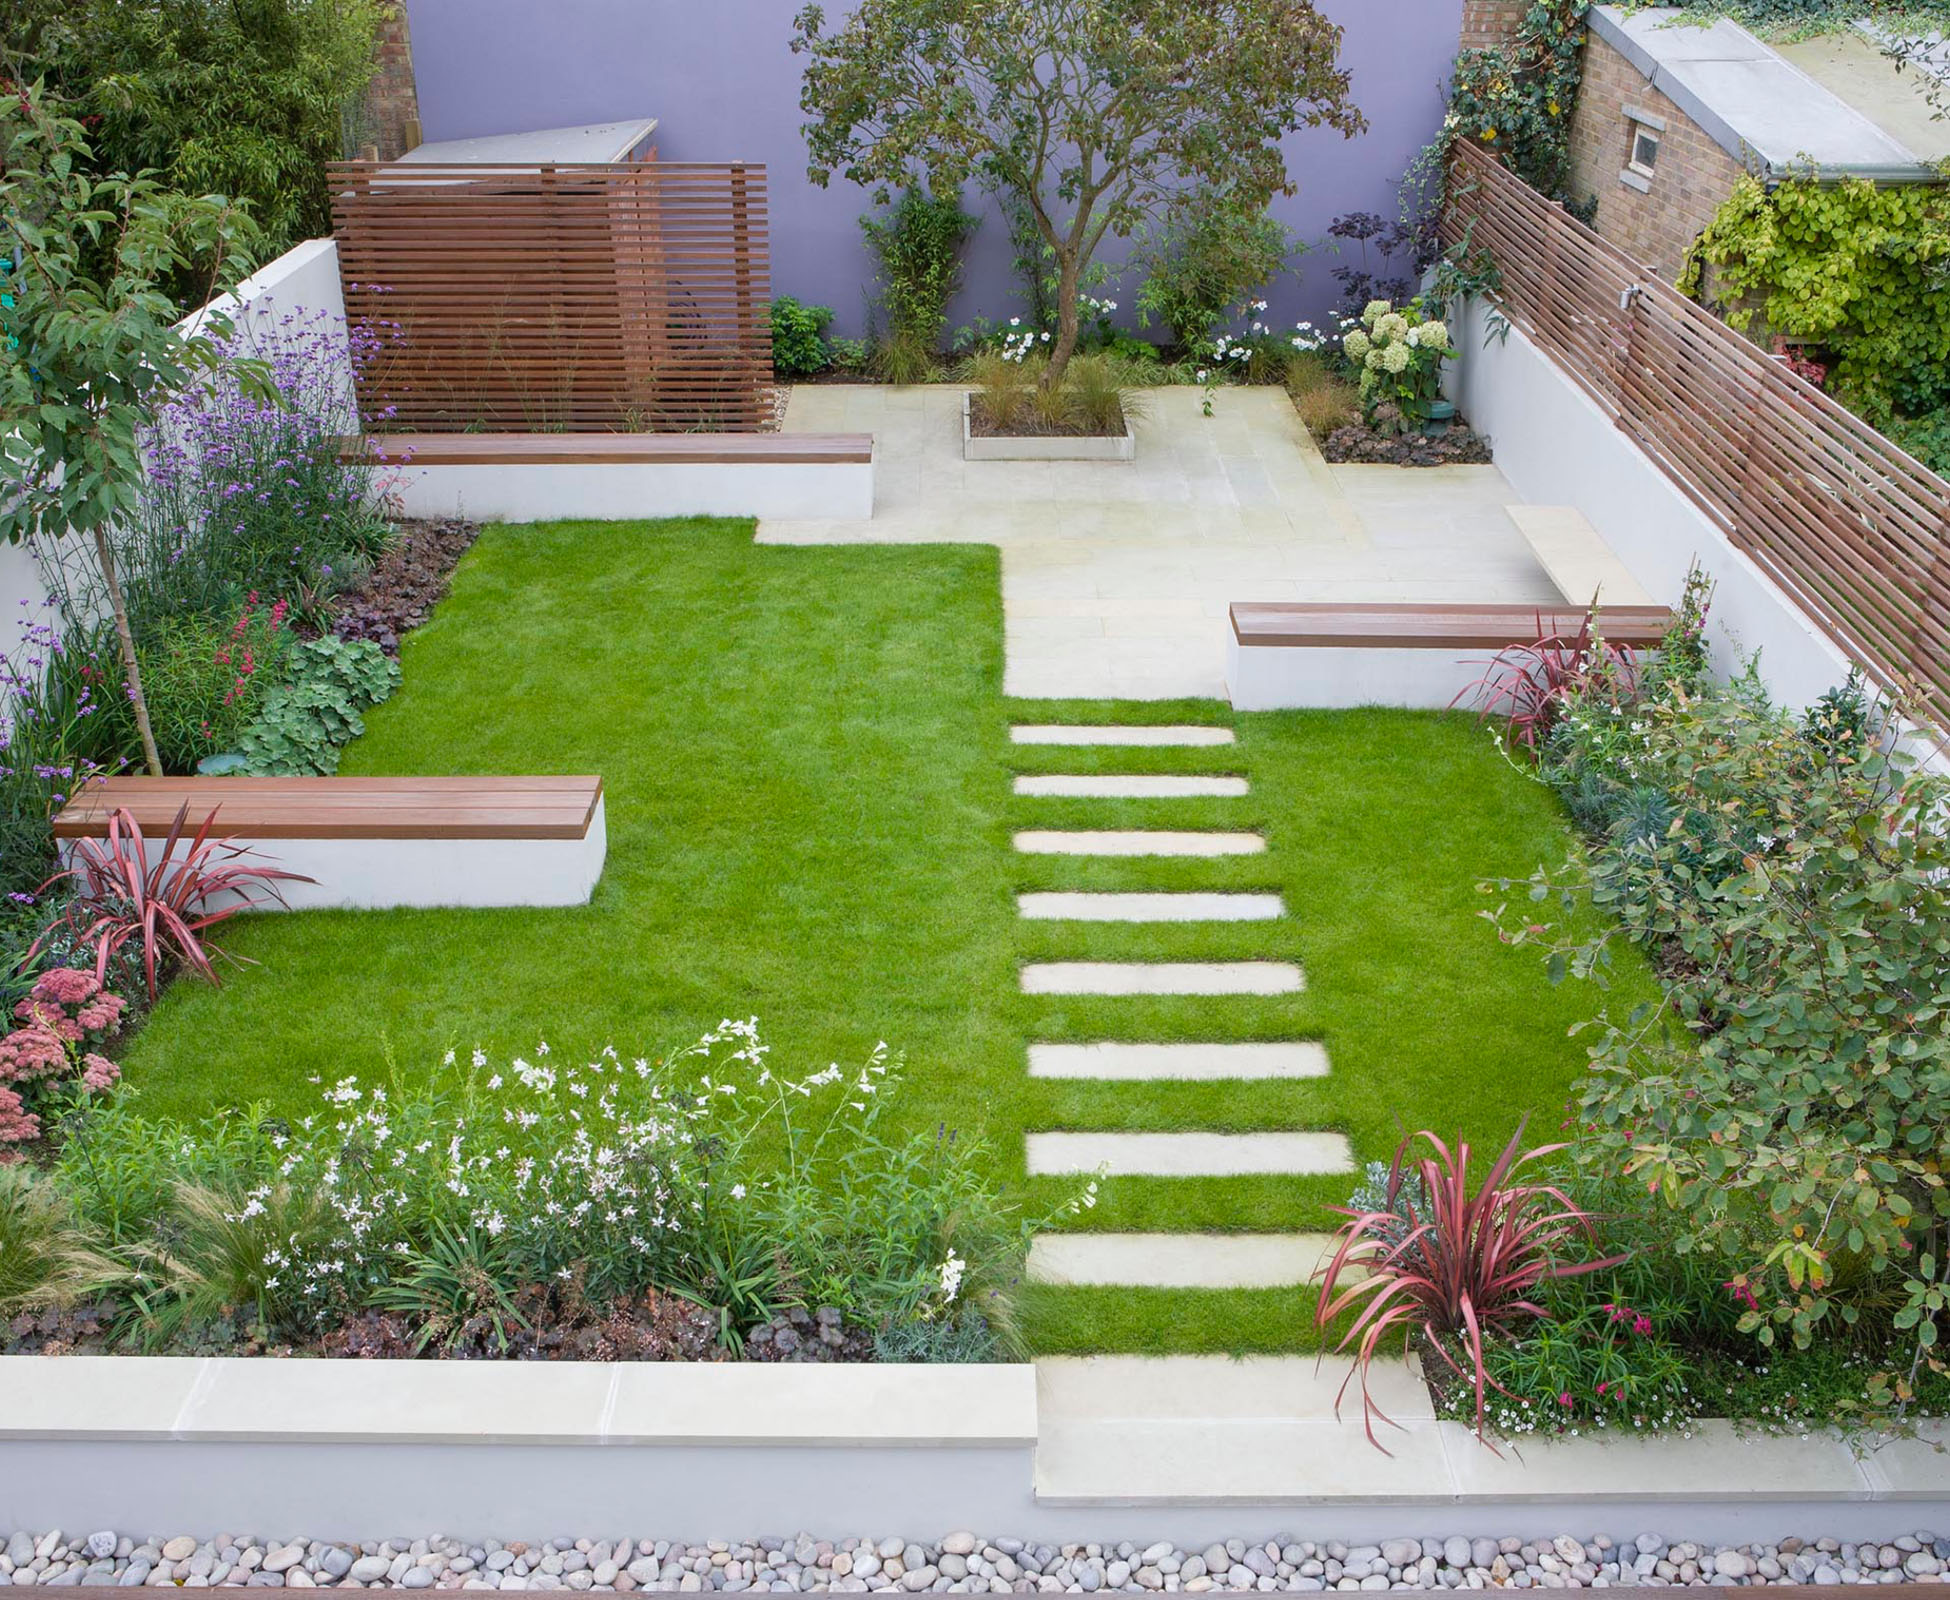 A wide view from the first floor of this house in Twickenham, South London, shows the whole garden with the lawn separating two seating areas and some staggered benches. The stepping stones through are the link tying in the whole design.